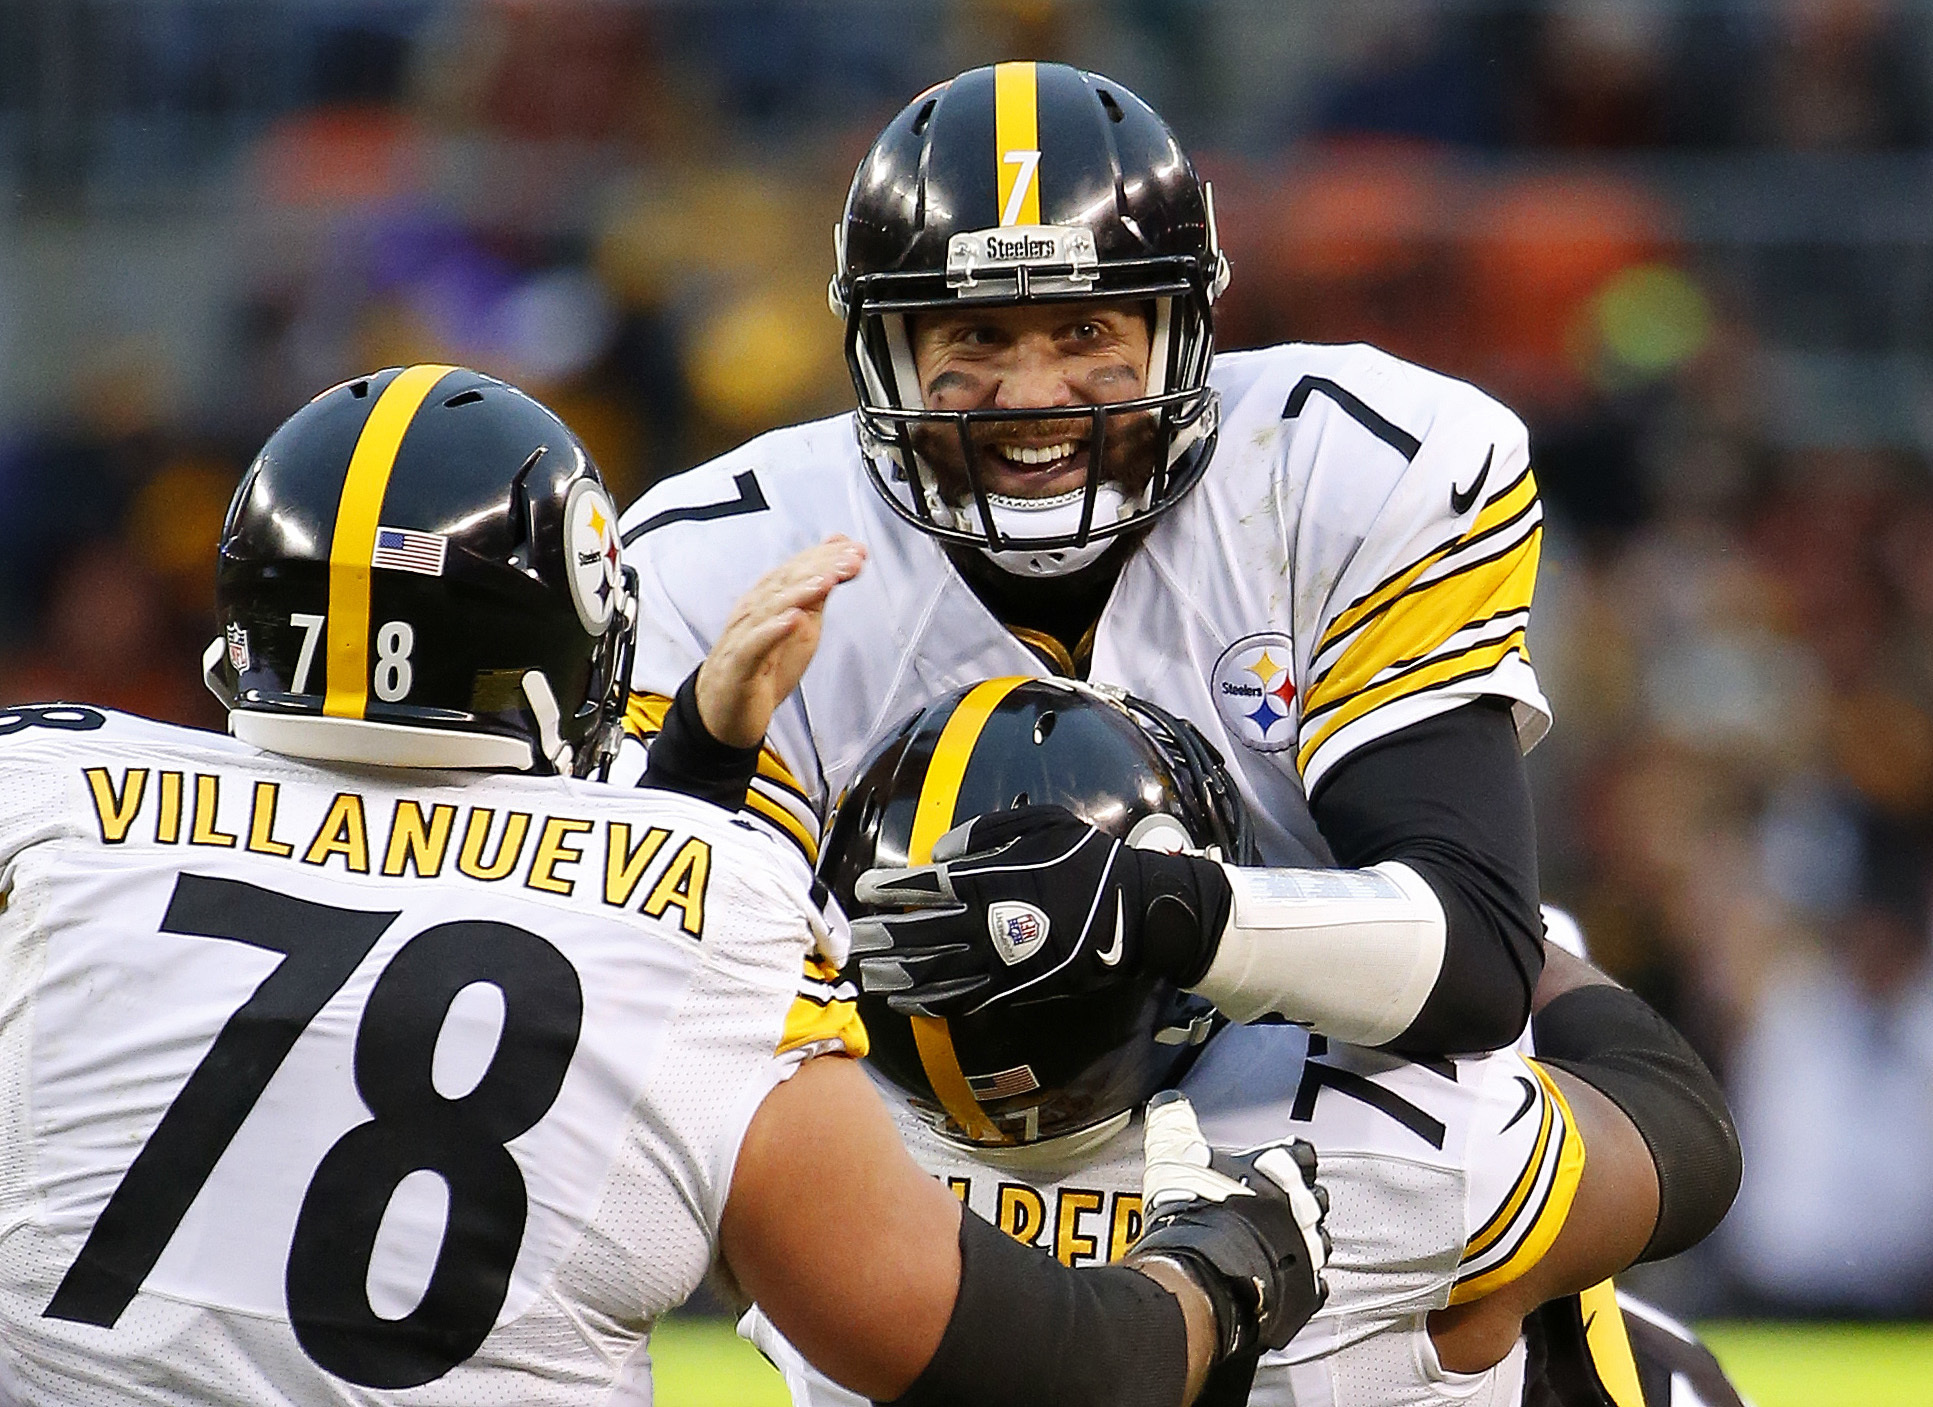 FILE - In this Jan. 3, 2016, file photo, Pittsburgh Steelers quarterback Ben Roethlisberger celebrates a touchdown pass against the Cleveland Browns with tackle Marcus Gilbert (77) and Alejandro Villanueva (78) during an NFL football game in Cleveland, Oh